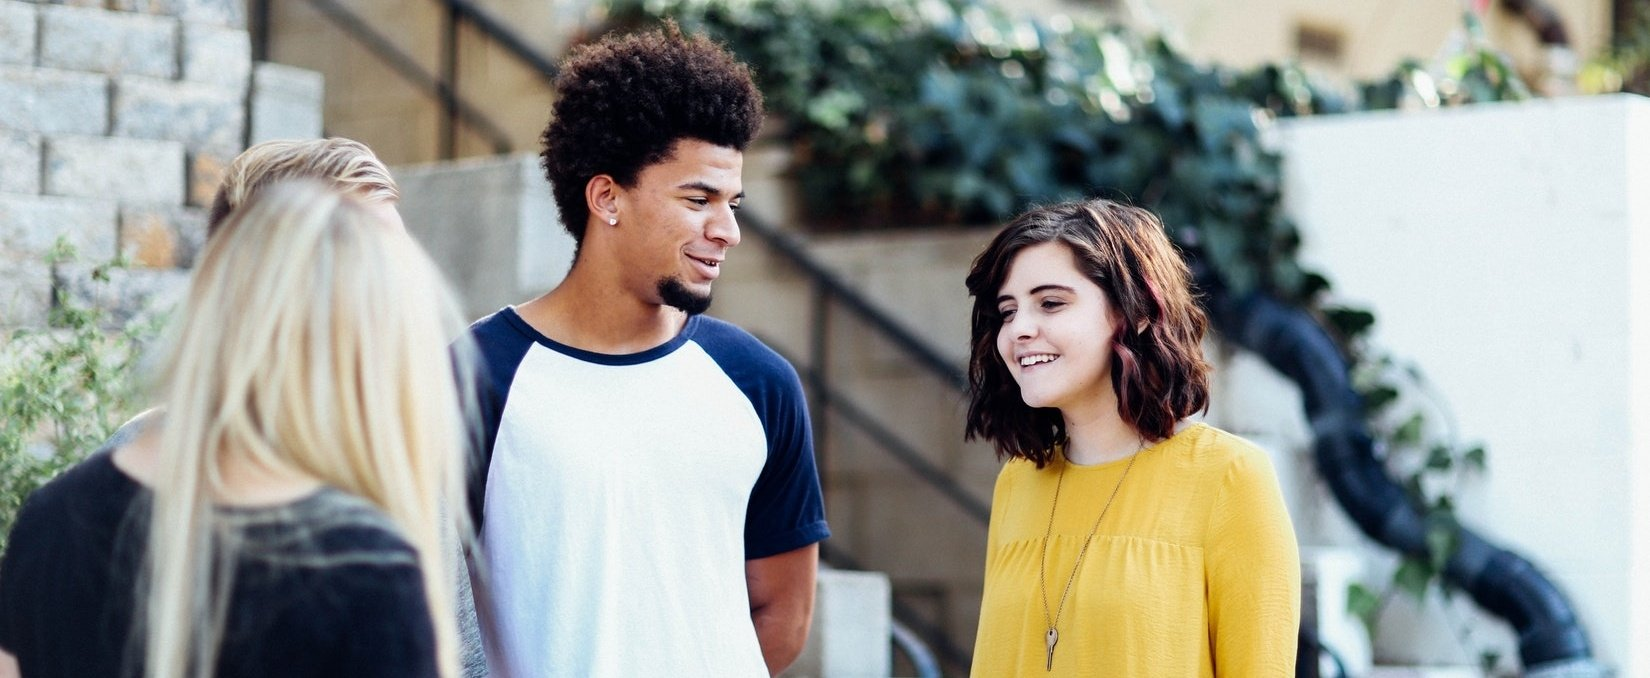 5 Tips for Reaching Generation Z